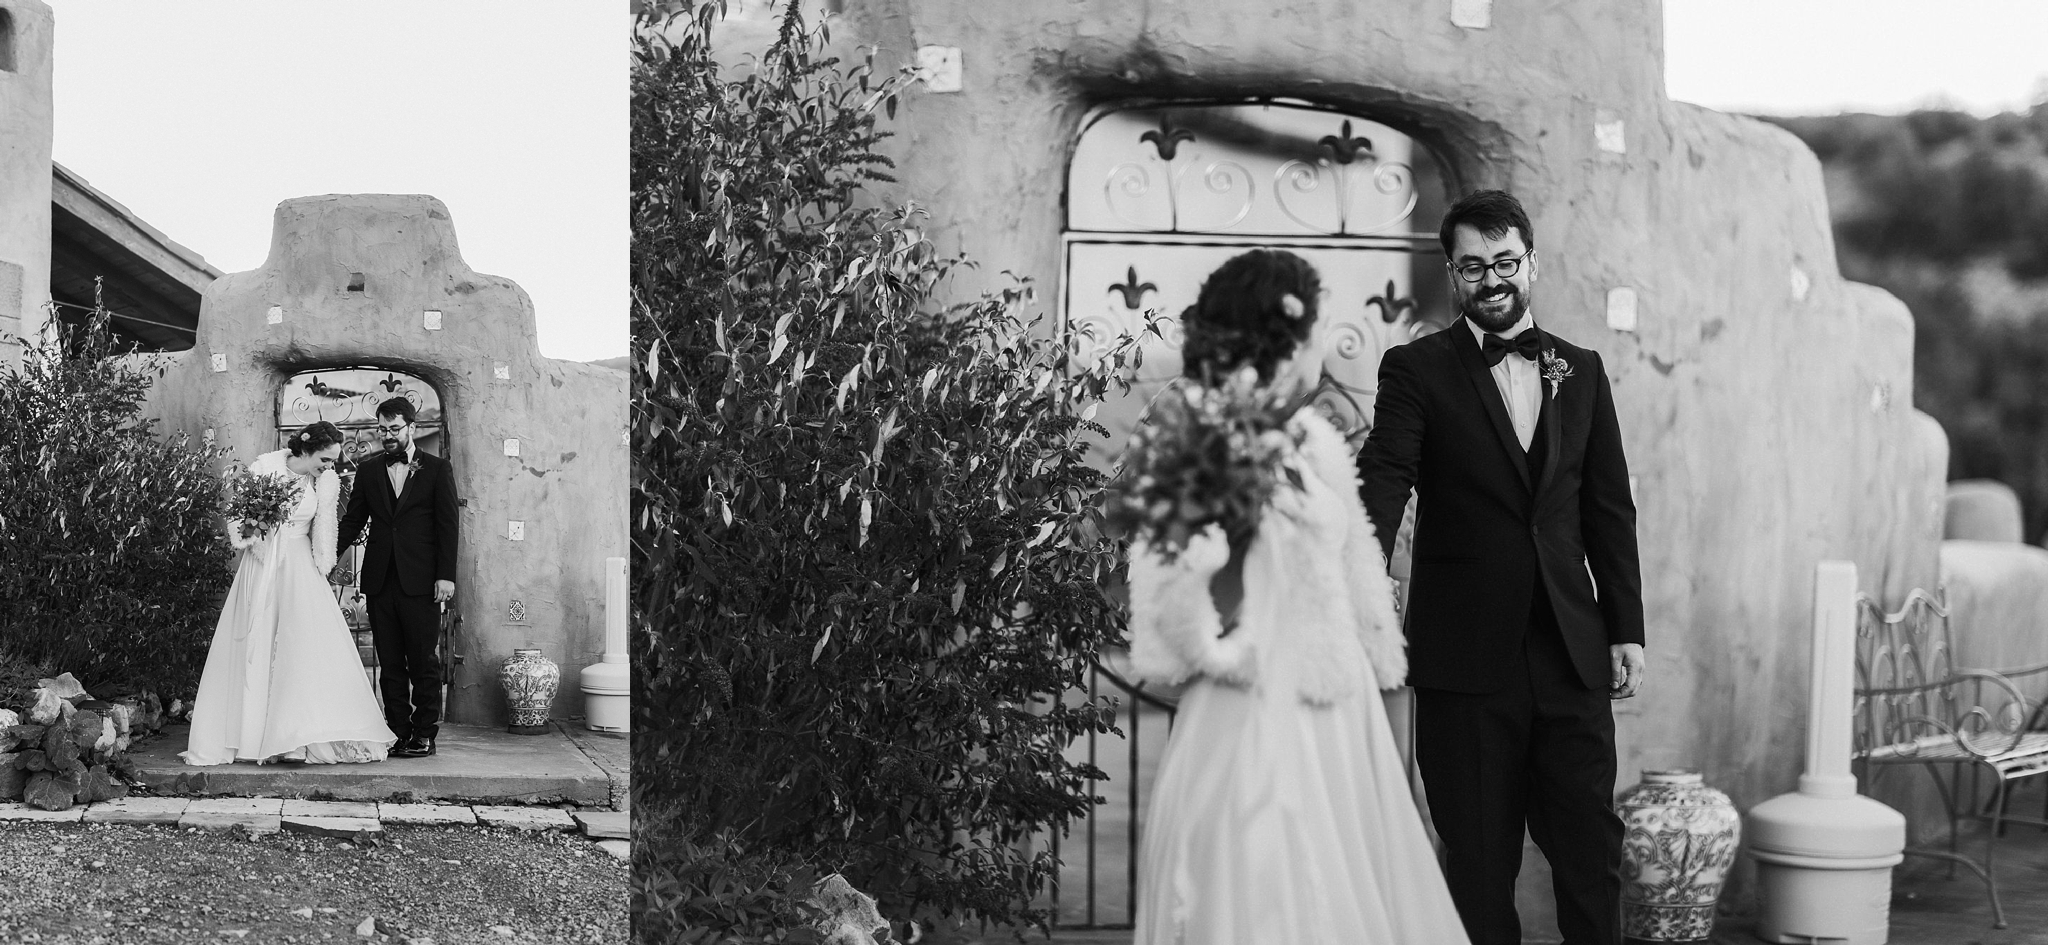 Alicia+lucia+photography+-+albuquerque+wedding+photographer+-+santa+fe+wedding+photography+-+new+mexico+wedding+photographer+-+new+mexico+wedding+-+engagement+-+santa+fe+wedding+-+hacienda+dona+andrea+-+hacienda+dona+andrea+wedding_0069.jpg